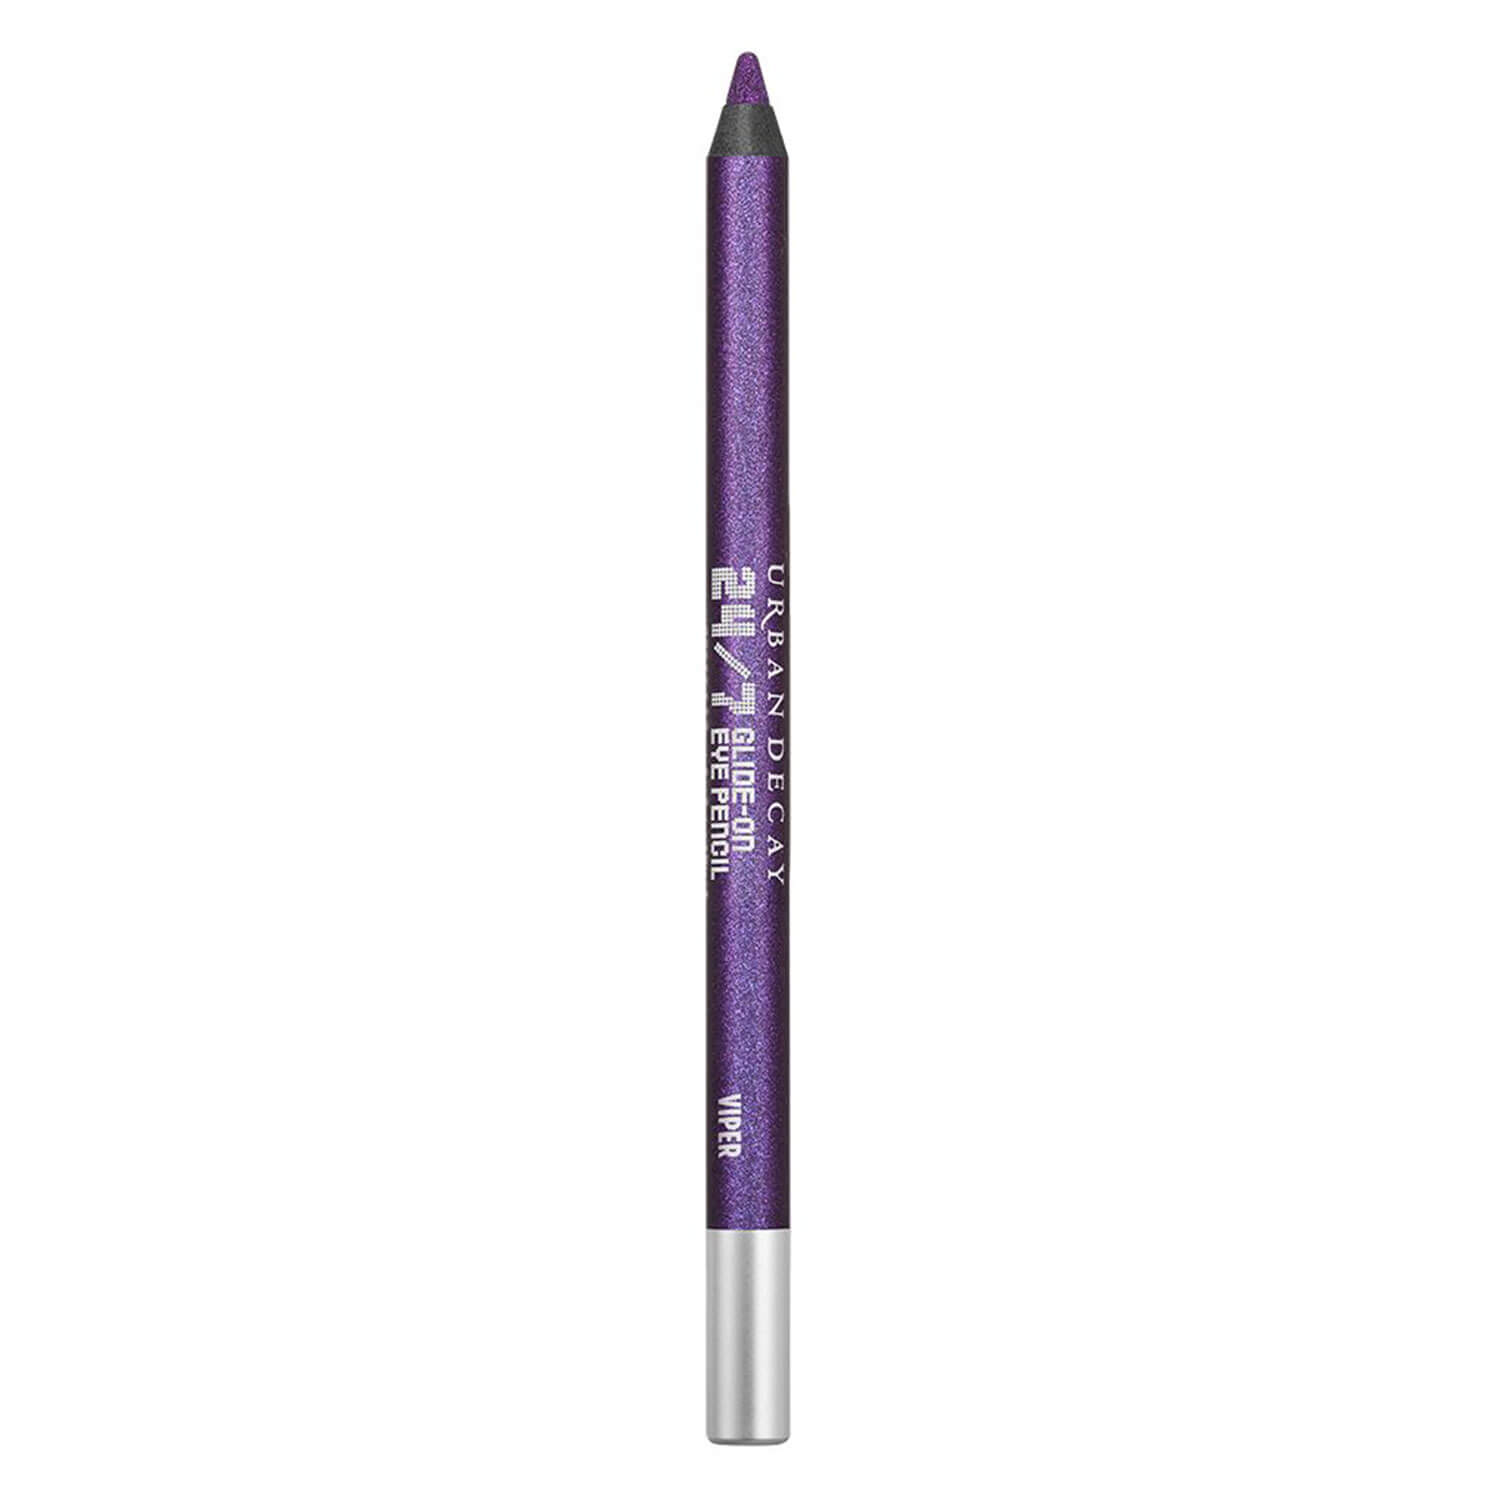 24/7 Glide-On - Eye Pencil Viper - 1.2g